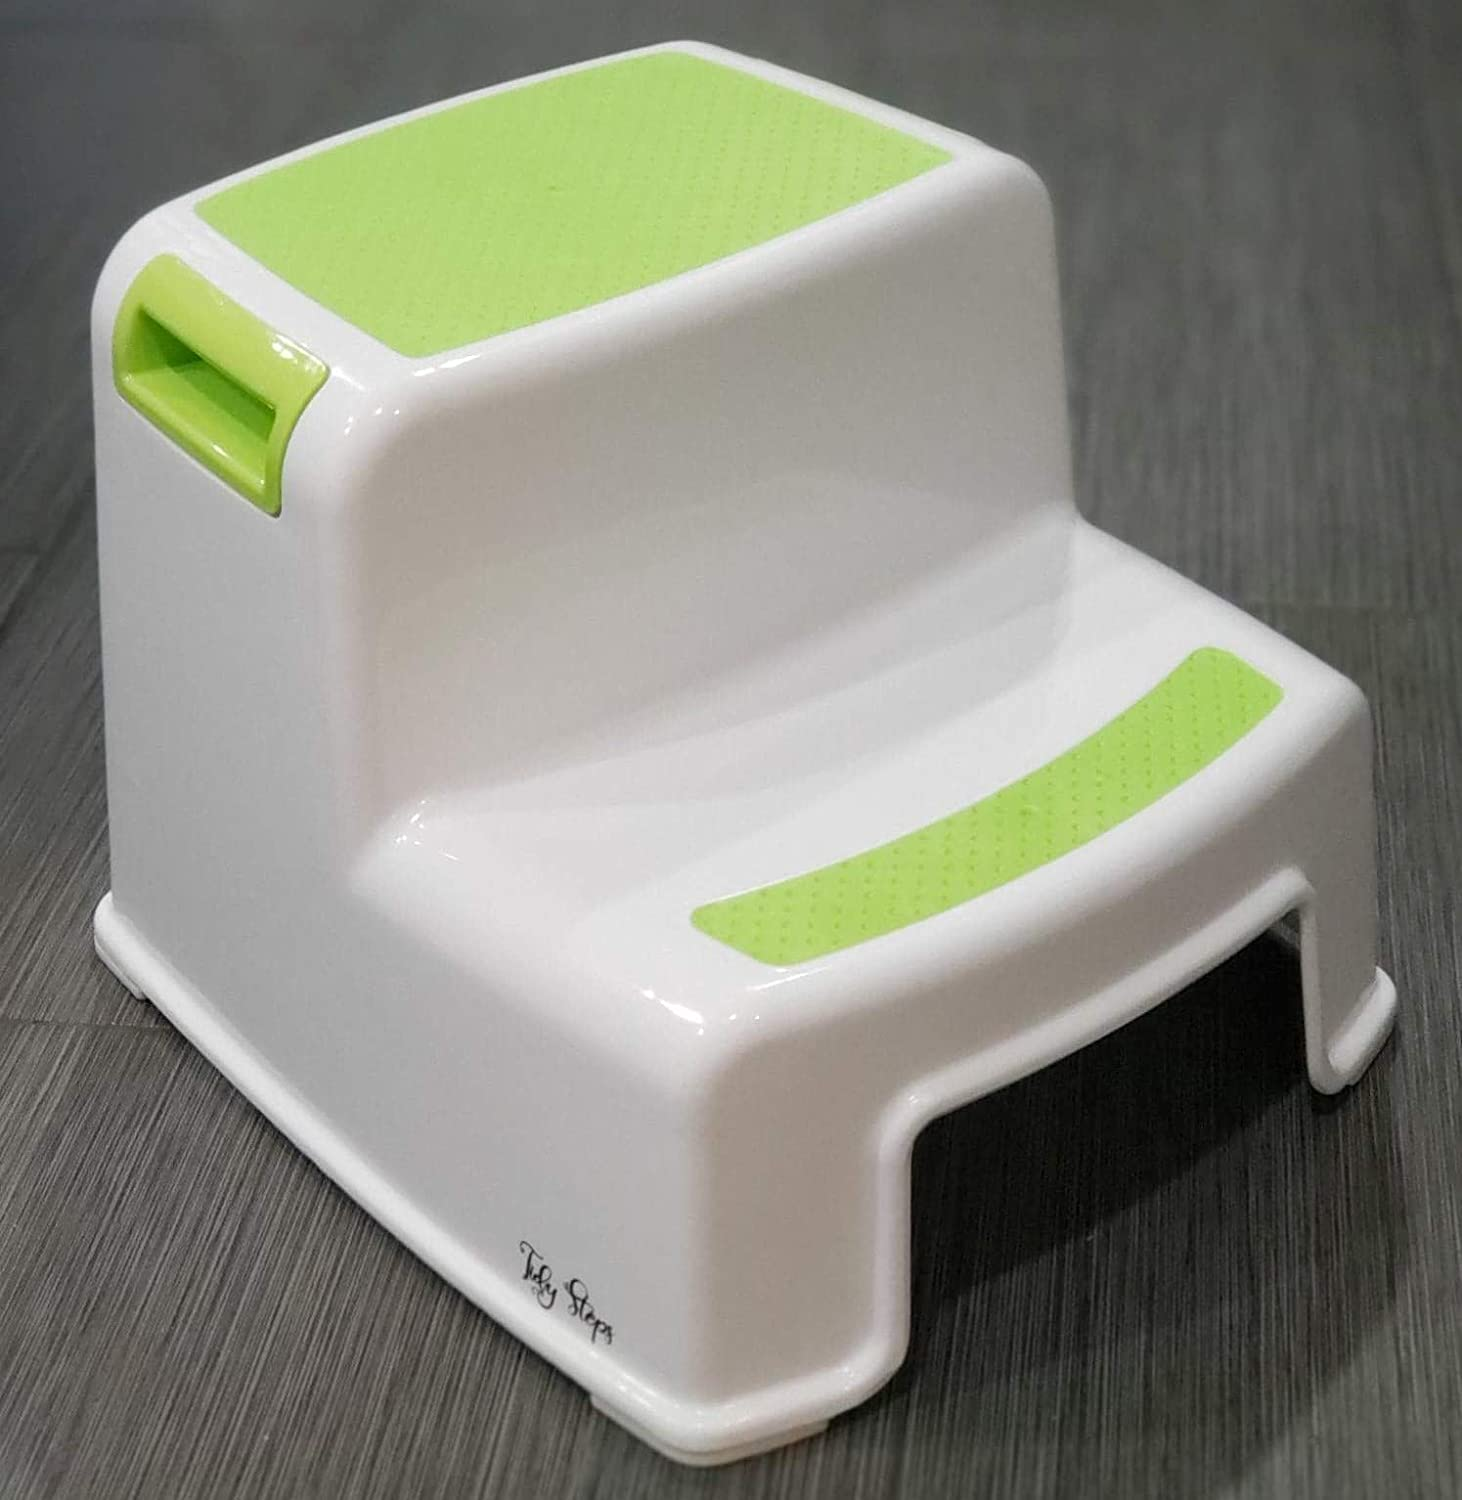 Tidy Whatnots 2 Pack Double Step Stool for Adults and Children for Everyday Use Slip Resistant Soft Grip for Safety as Bathroom Potty Stool and Kitchen Step Stool